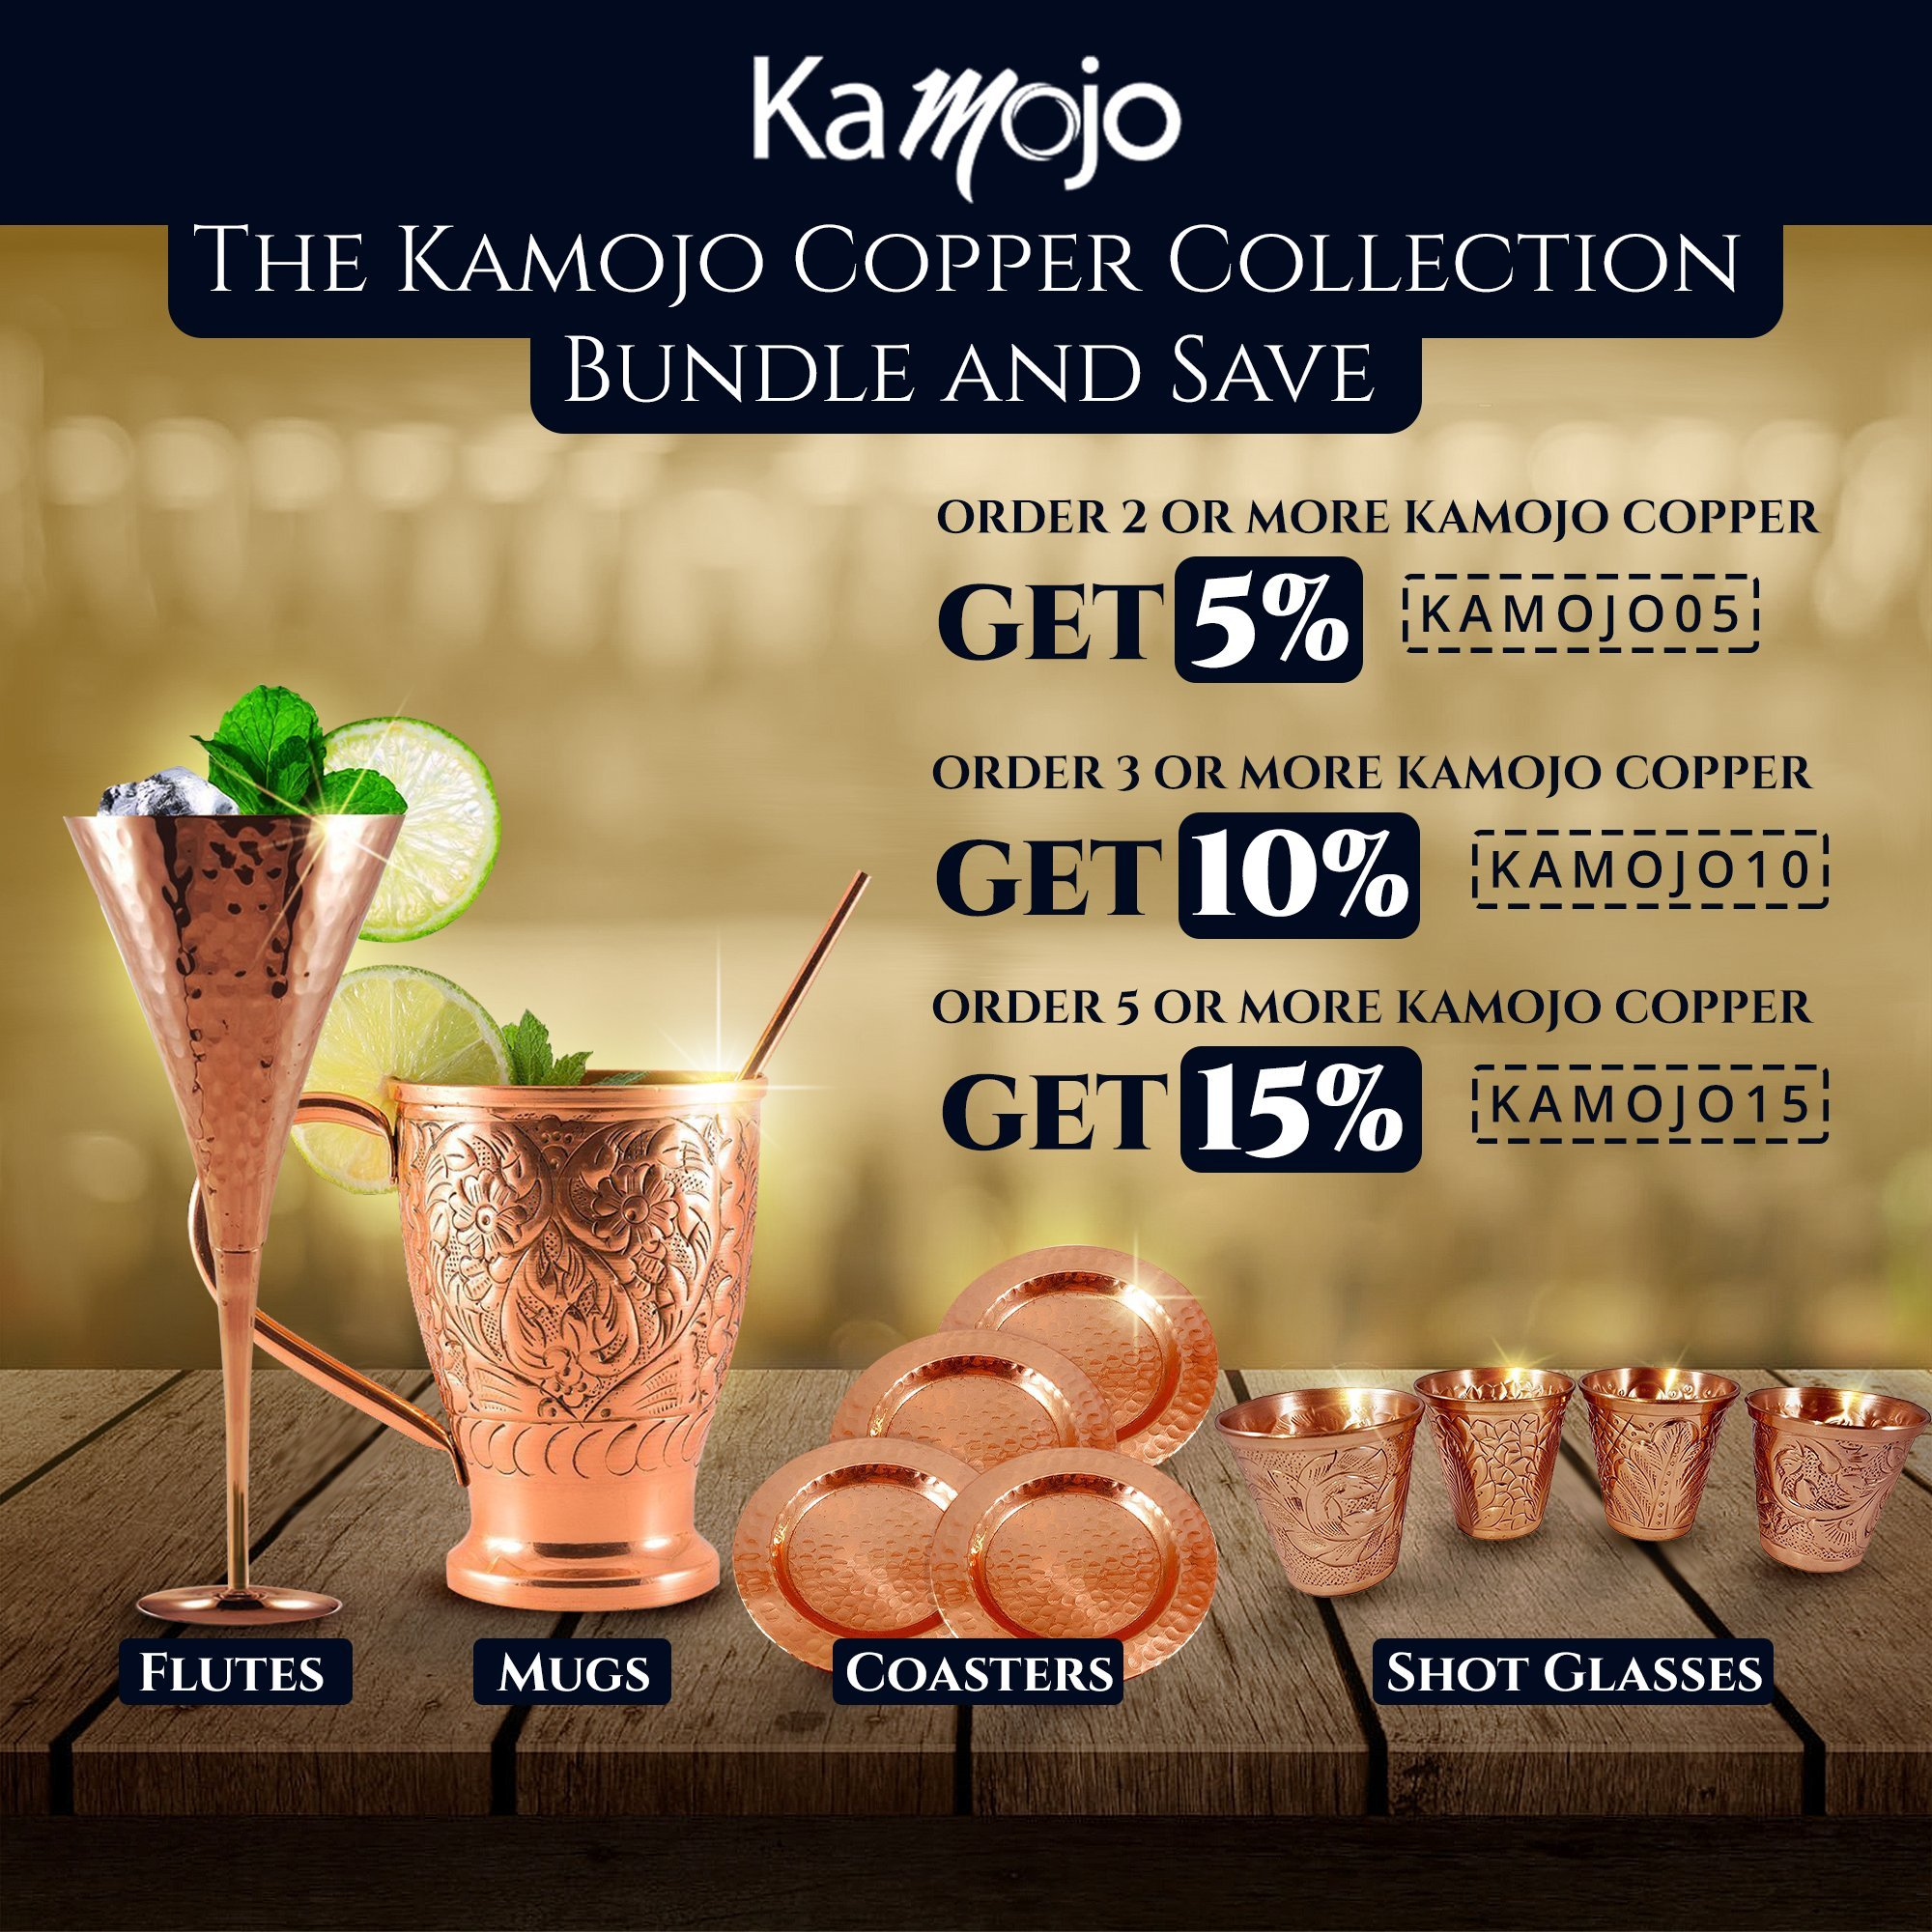 Moscow Mule Copper Mugs Party Pack. 8 Embossed Copper Mugs, Matching Shot Glasses (8) & Straws (8) Gift Set by Kamojo